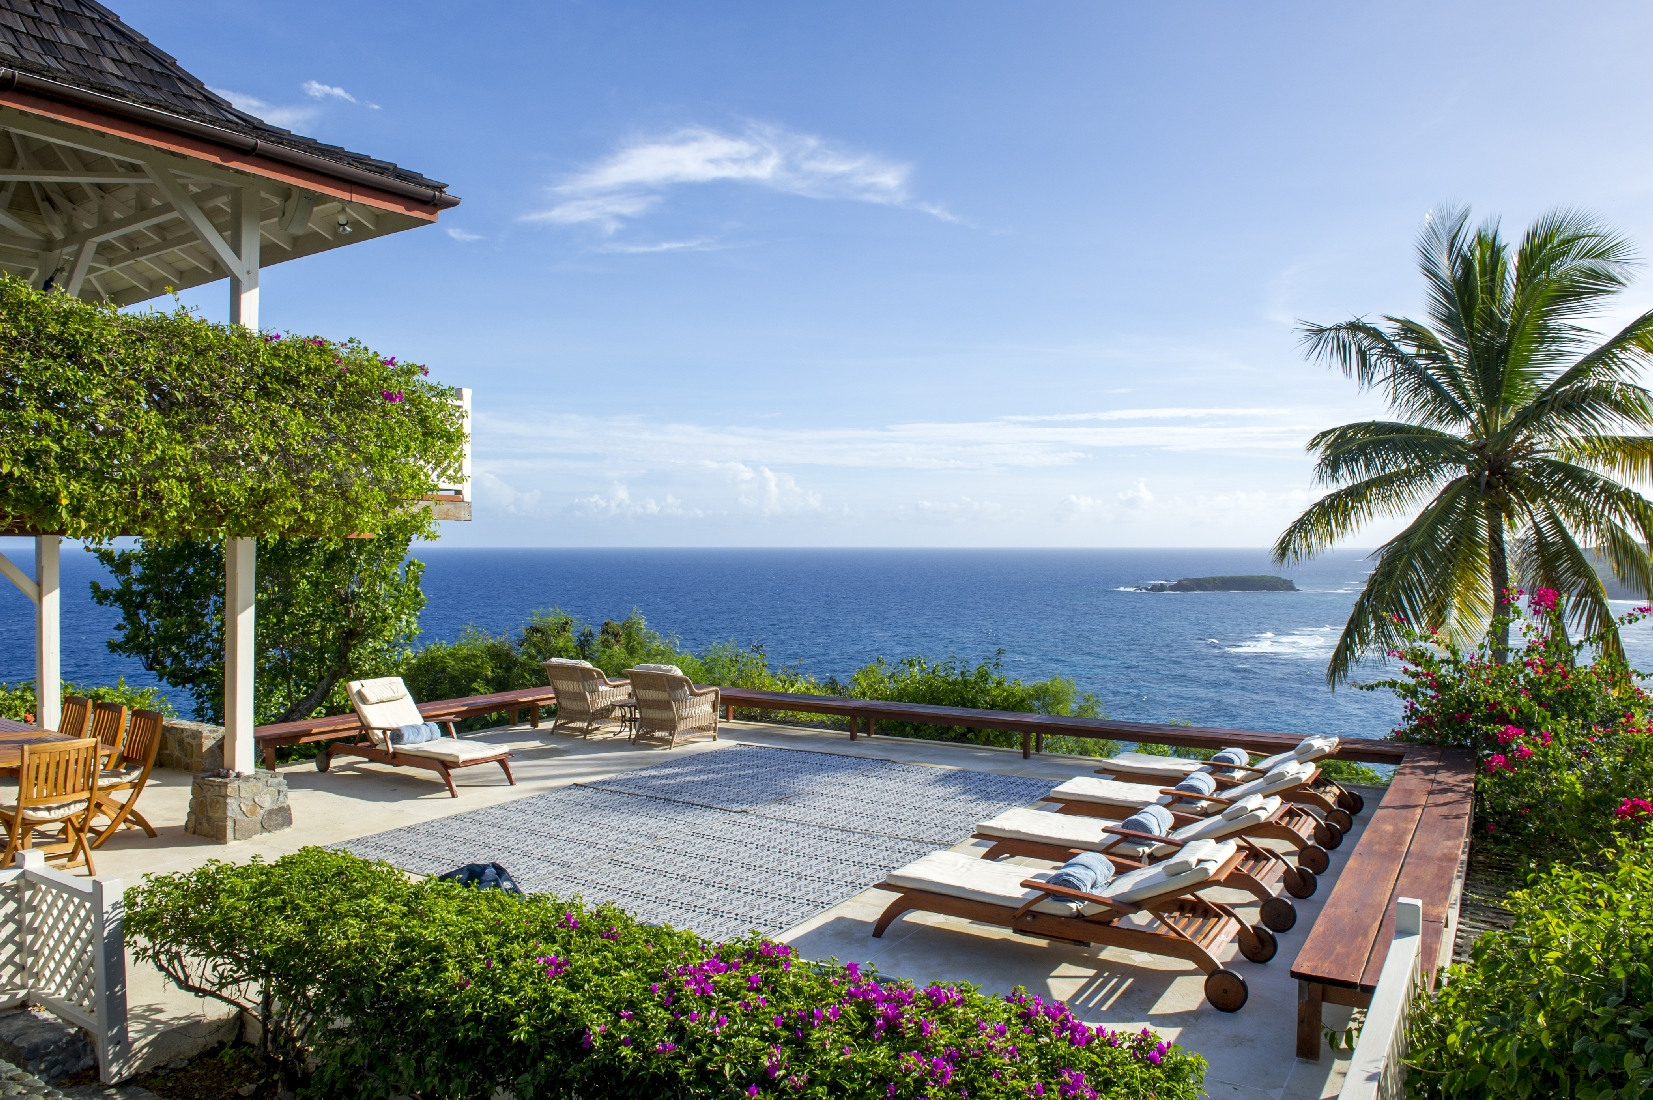 Terrace with sun loungers at Pangolin, Mustique